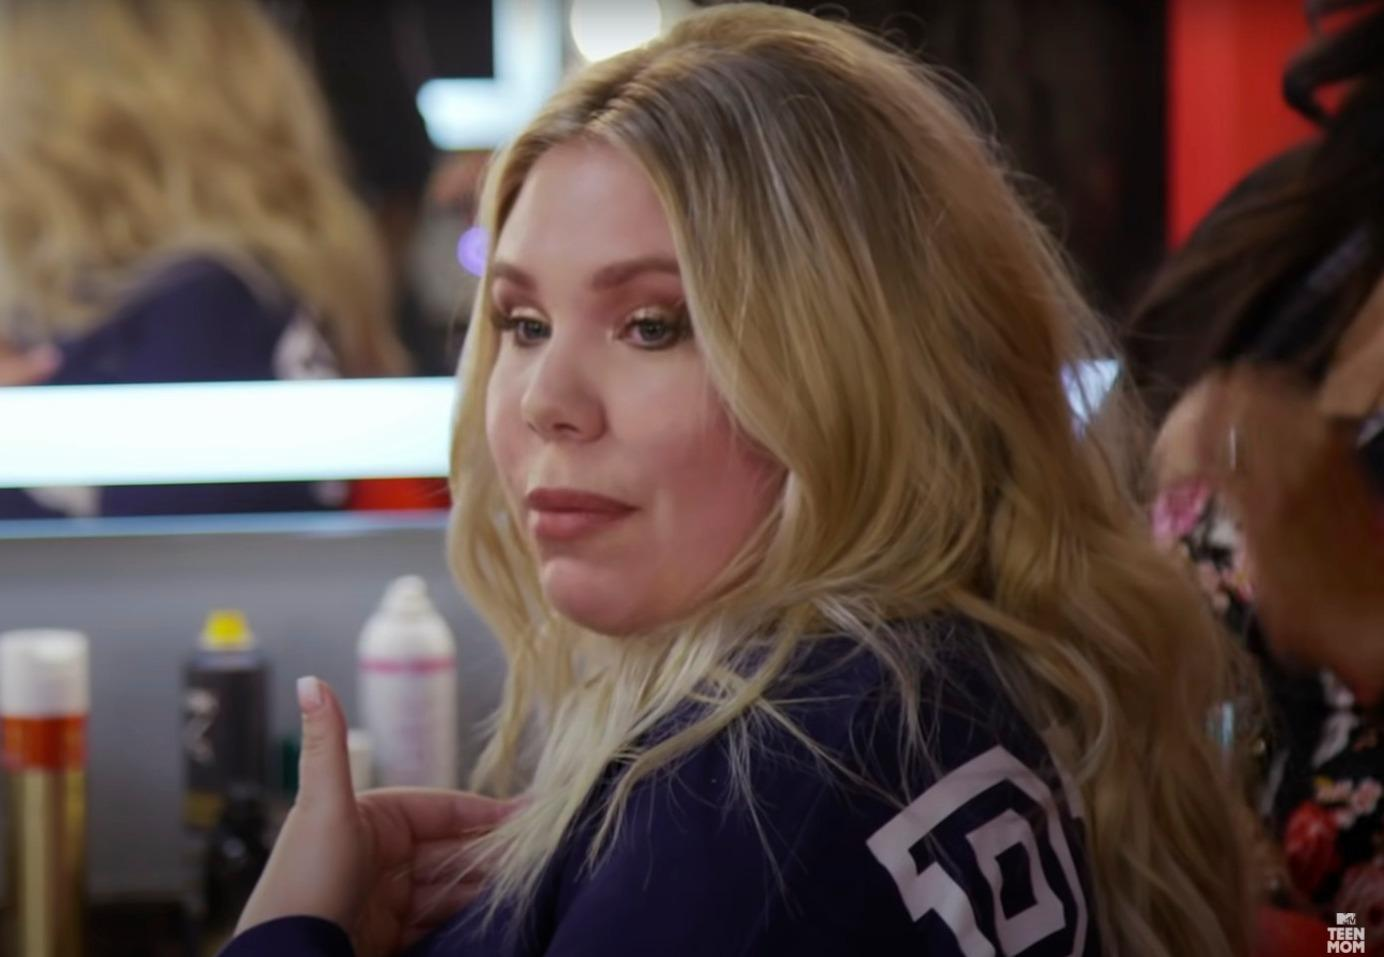 Kailyn Lowry Says That One Of Her Baby Daddies Humiliated Her By Asking For A Paternity Test!